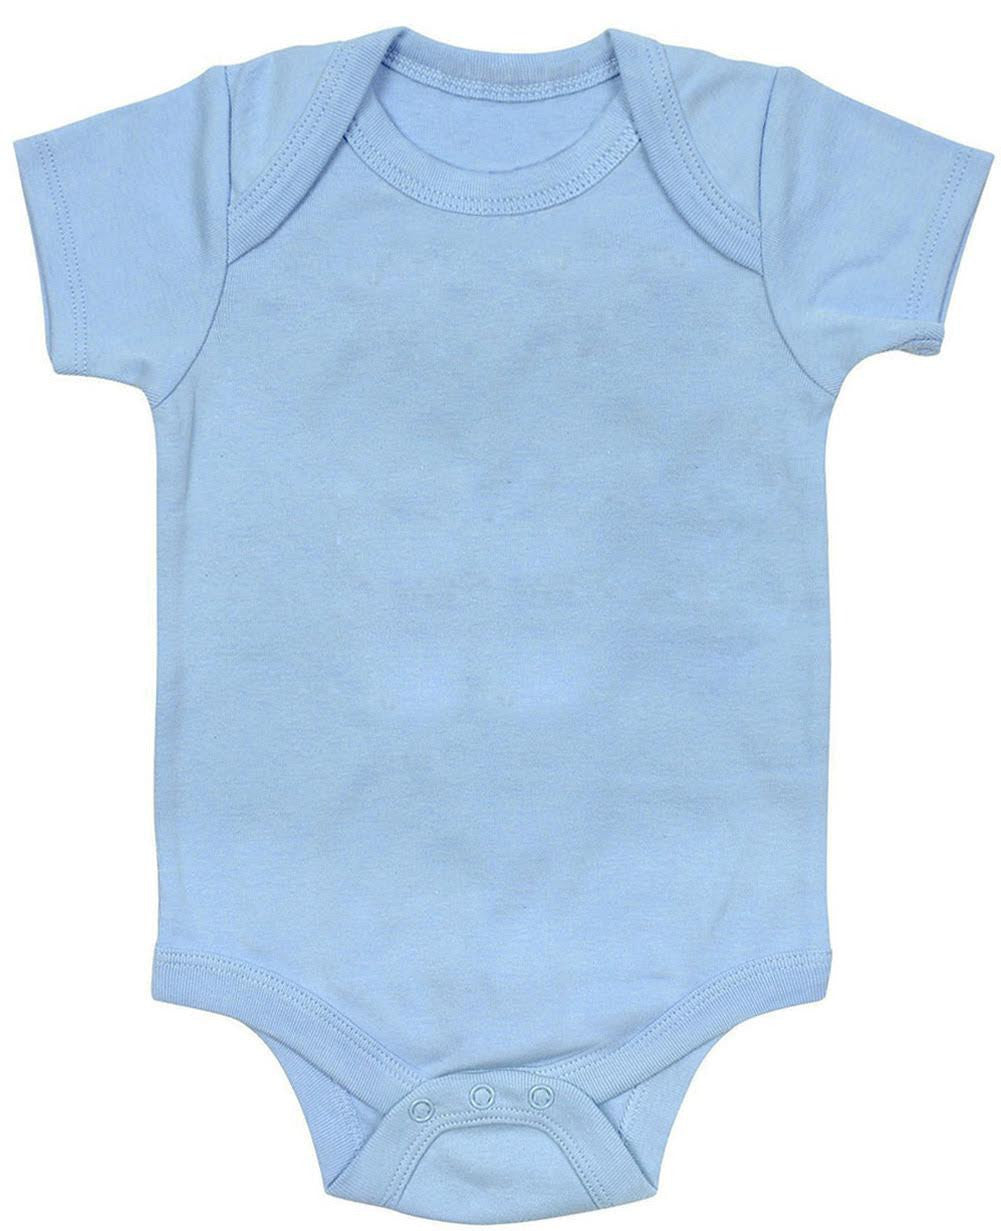 3aa8e18ed4037 Blue Plain Baby Bodysuit One Piece - Kiditude